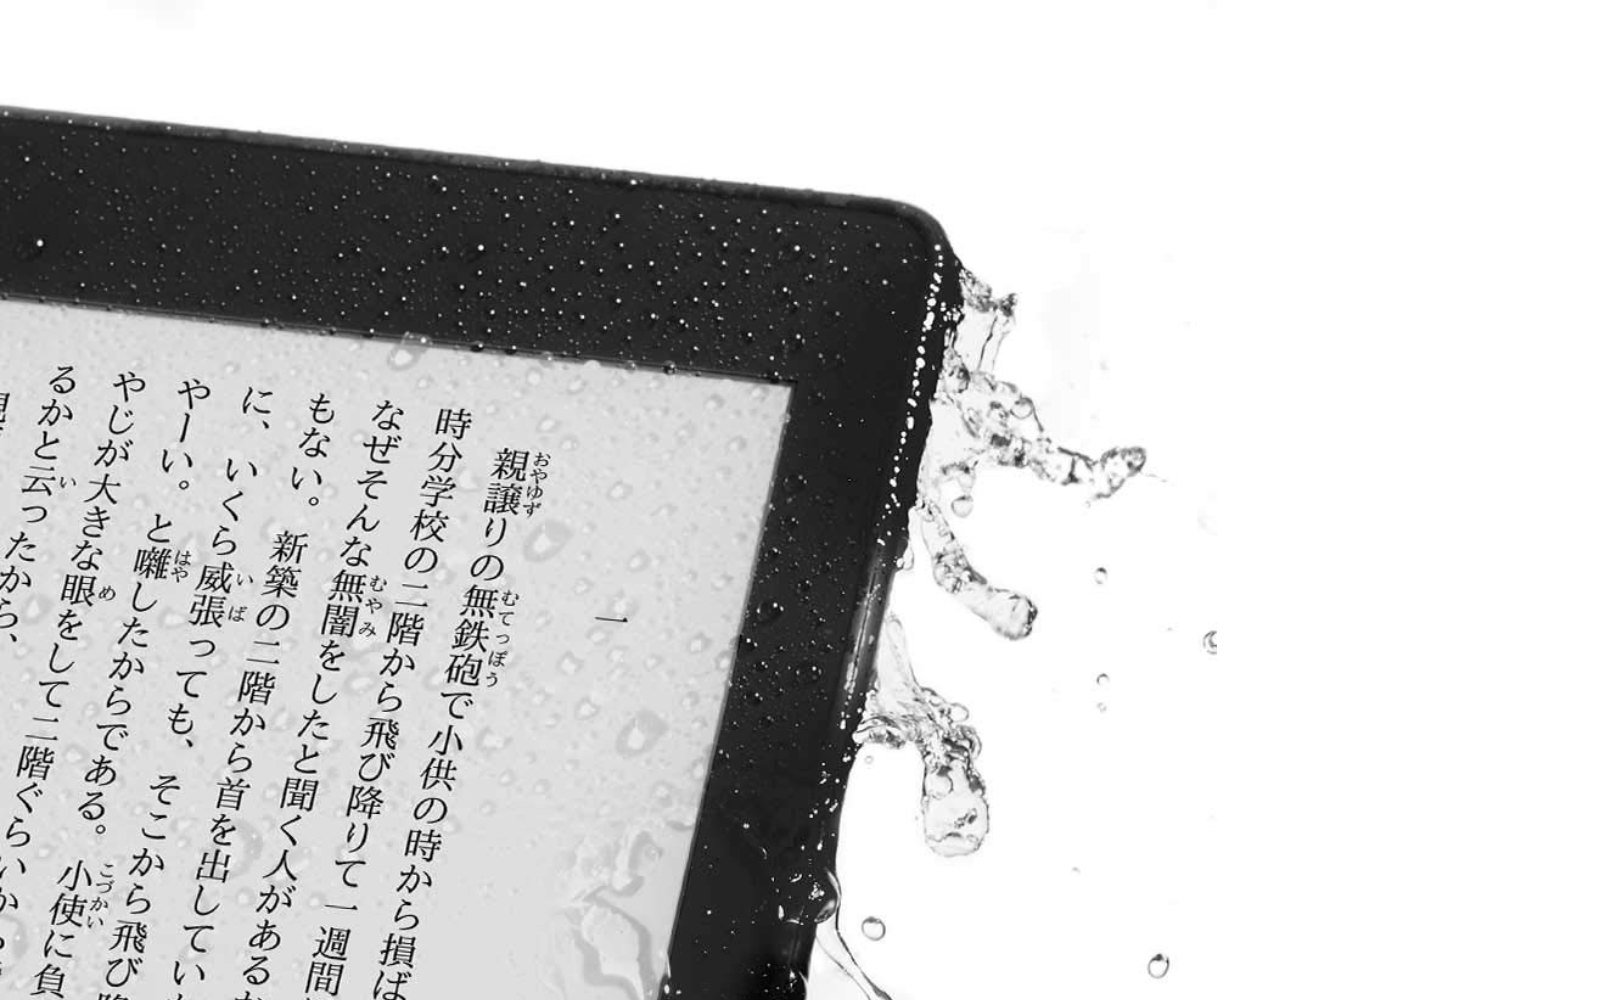 New Kindle Paperwhite Waterproof model